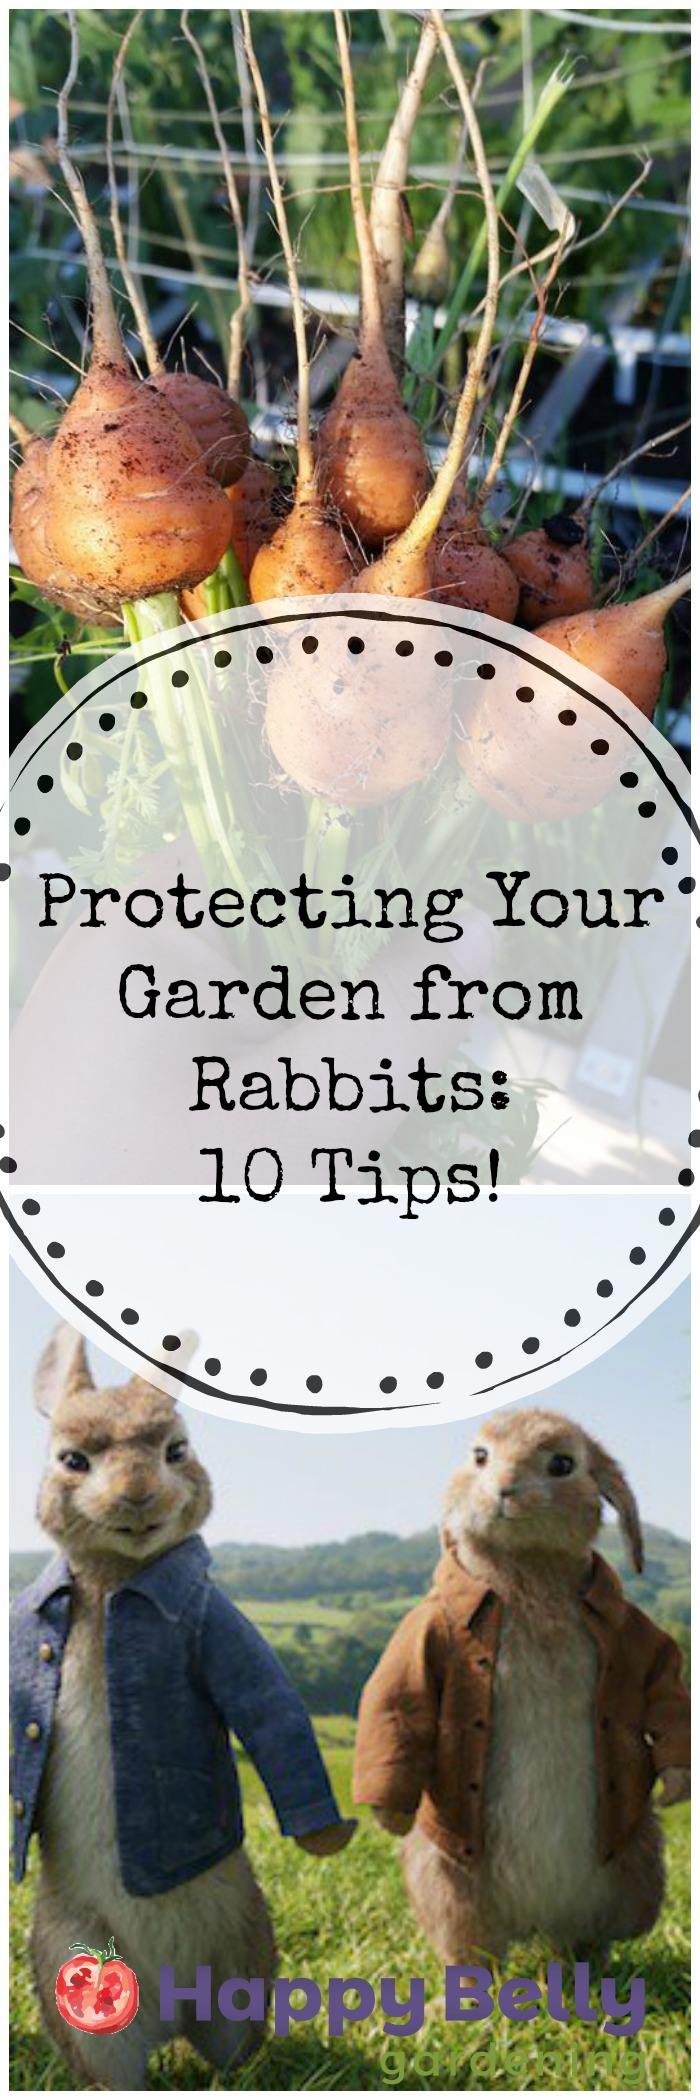 Protecting Your Garden from Rabbits - 10 tips.jpg